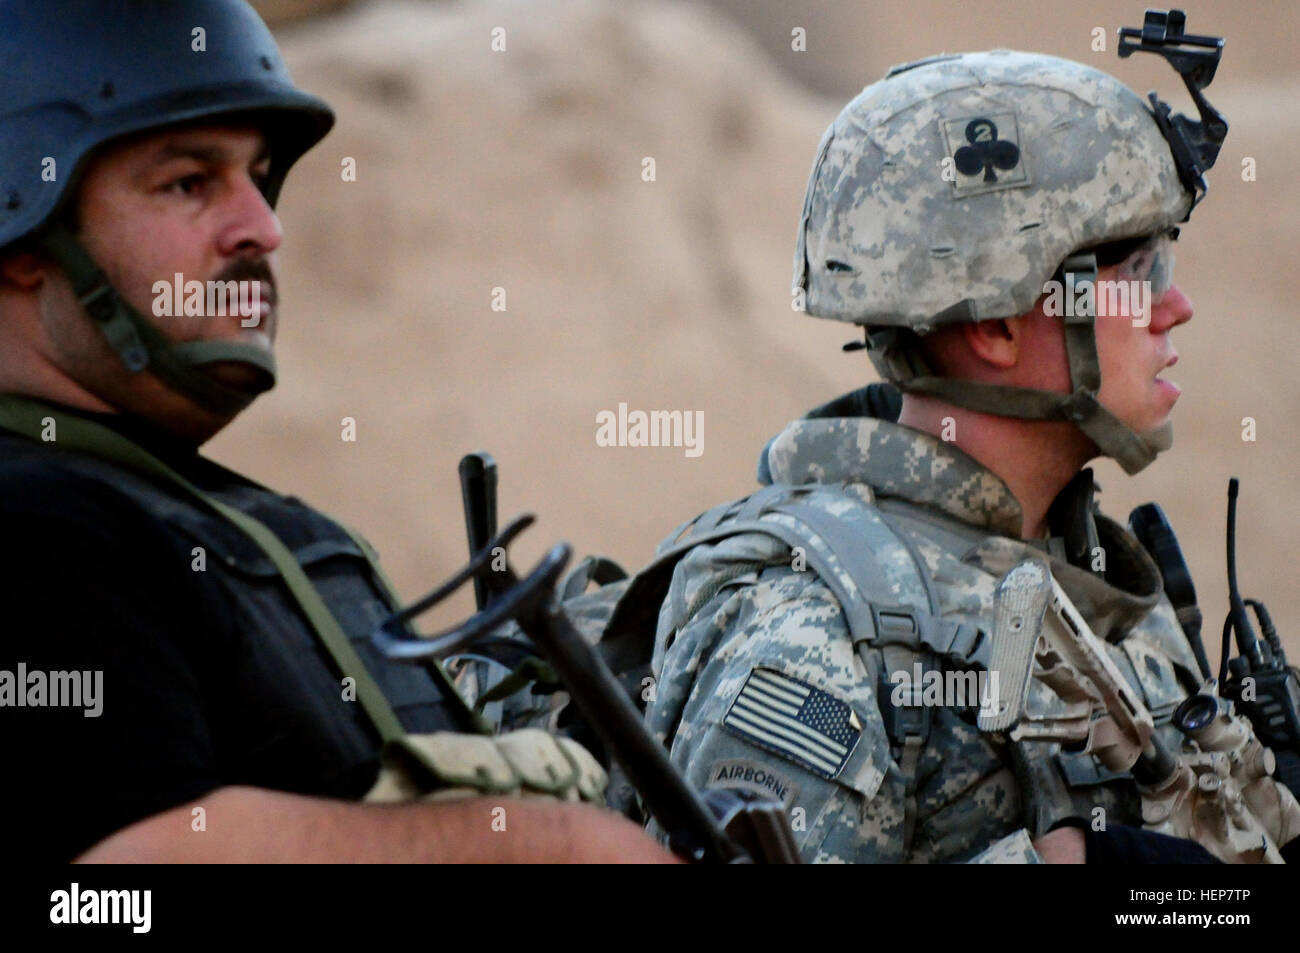 An Iraqi SWAT team member searches a village near Balad, alongside a Soldier from the 1st Special Troops Battalion, - Stock Image